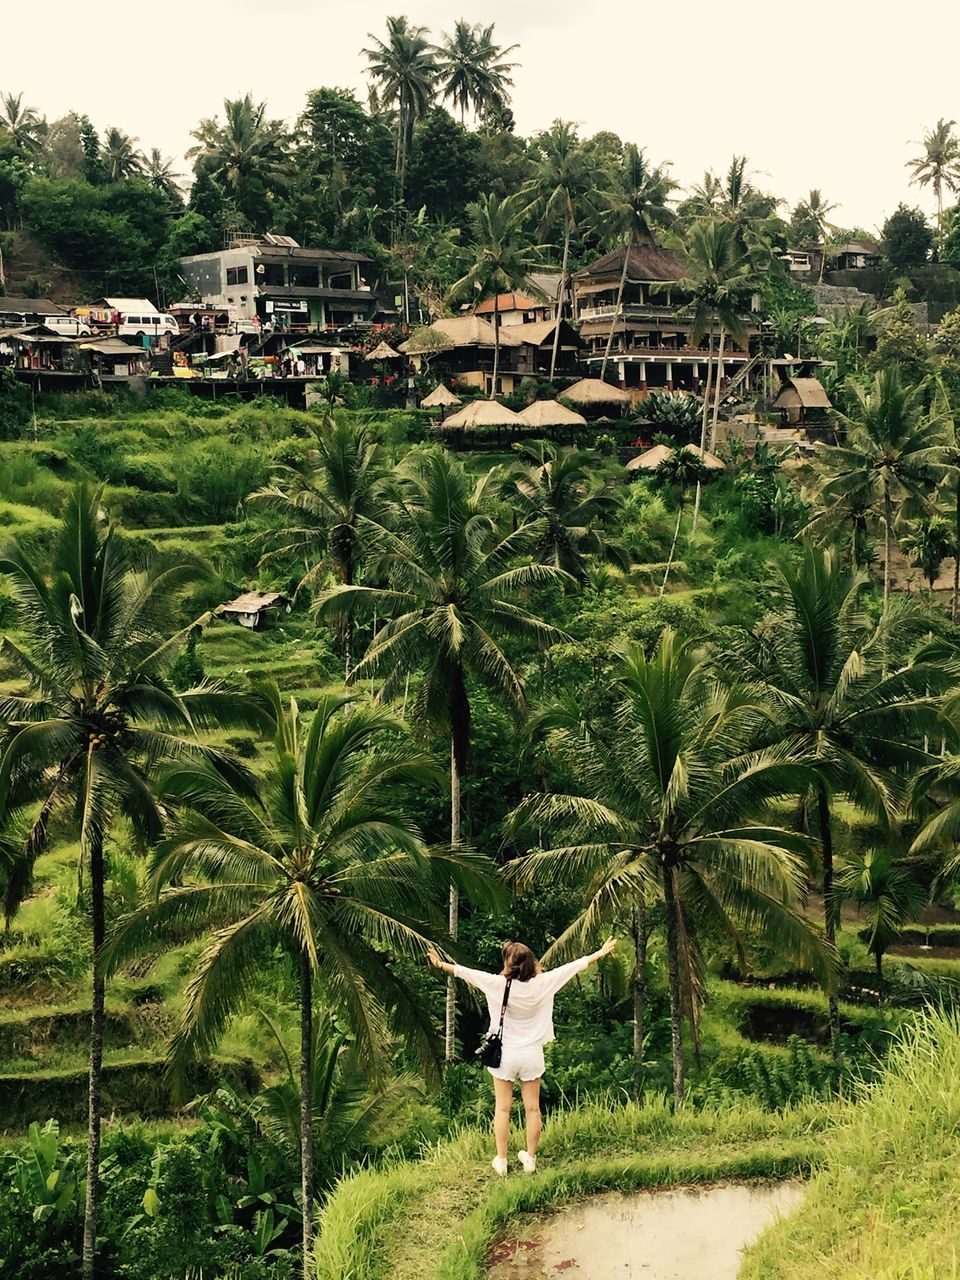 Rear View Of Woman With Arms Outstretched Standing Against Palm Trees